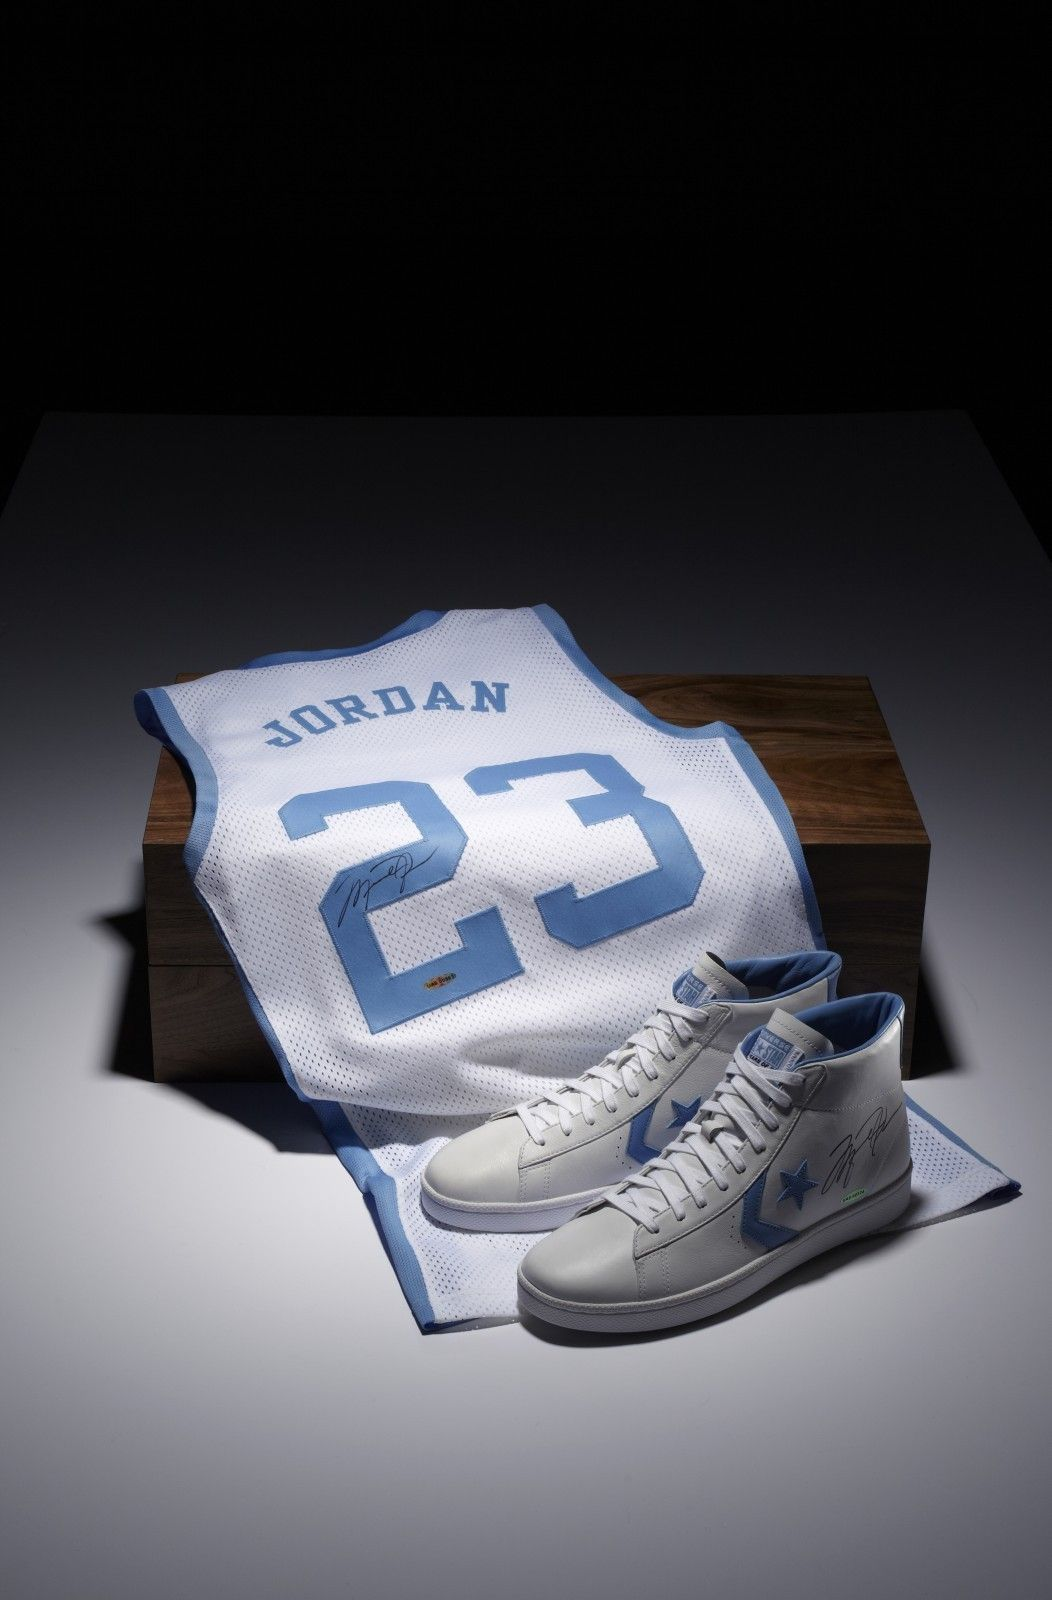 Michael Jordan X Converse Limited Edition Signed Commemorative Pack ... 80a26aff6